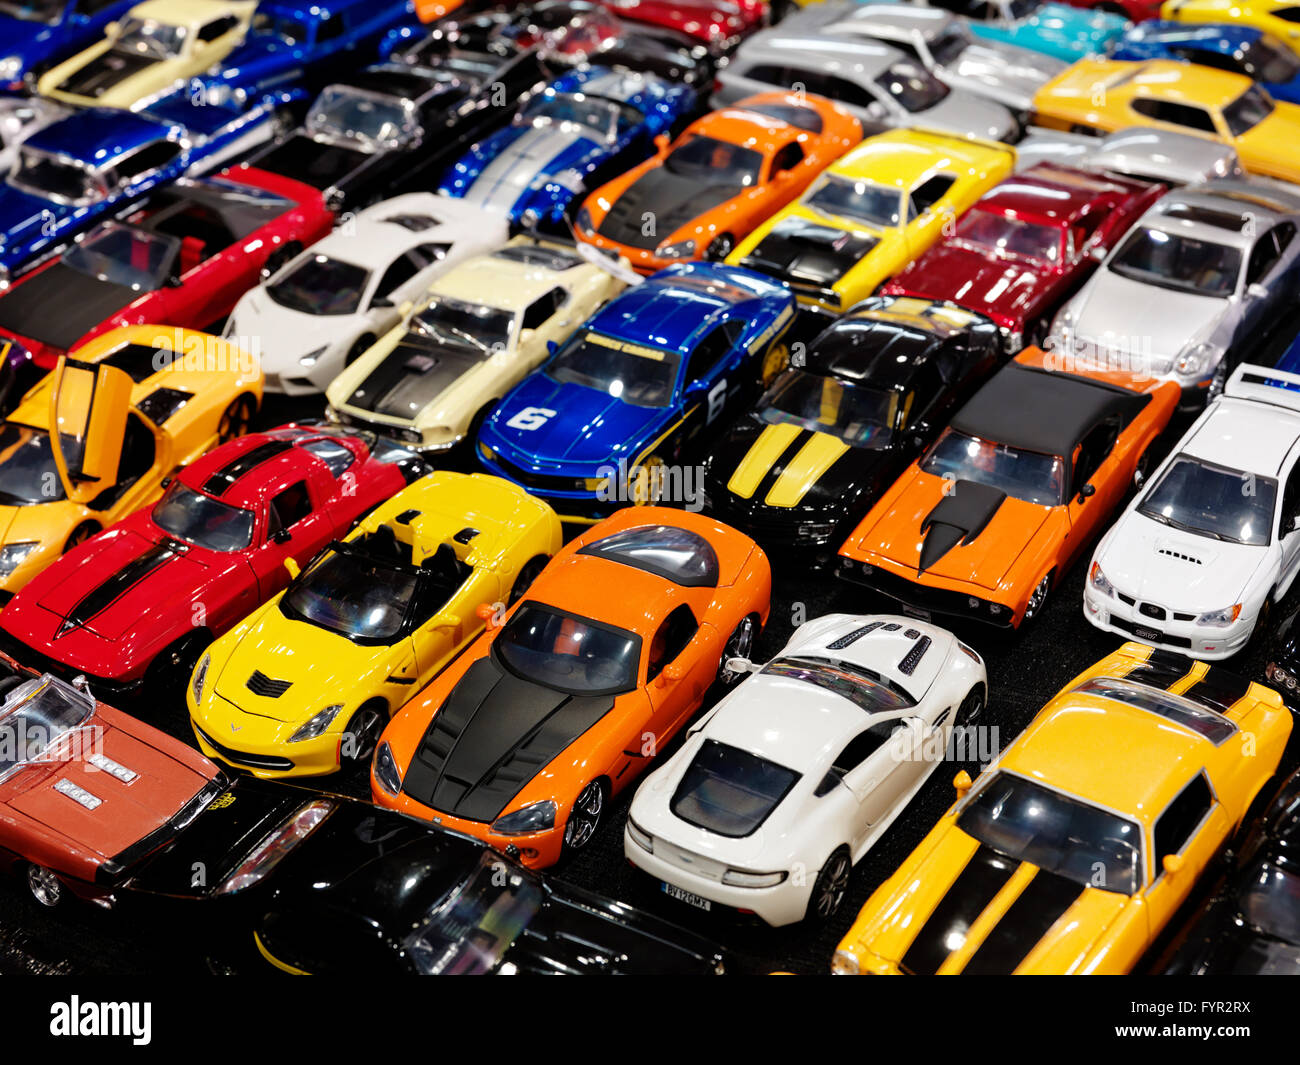 Sports cars, colorful die-cast models - Stock Image